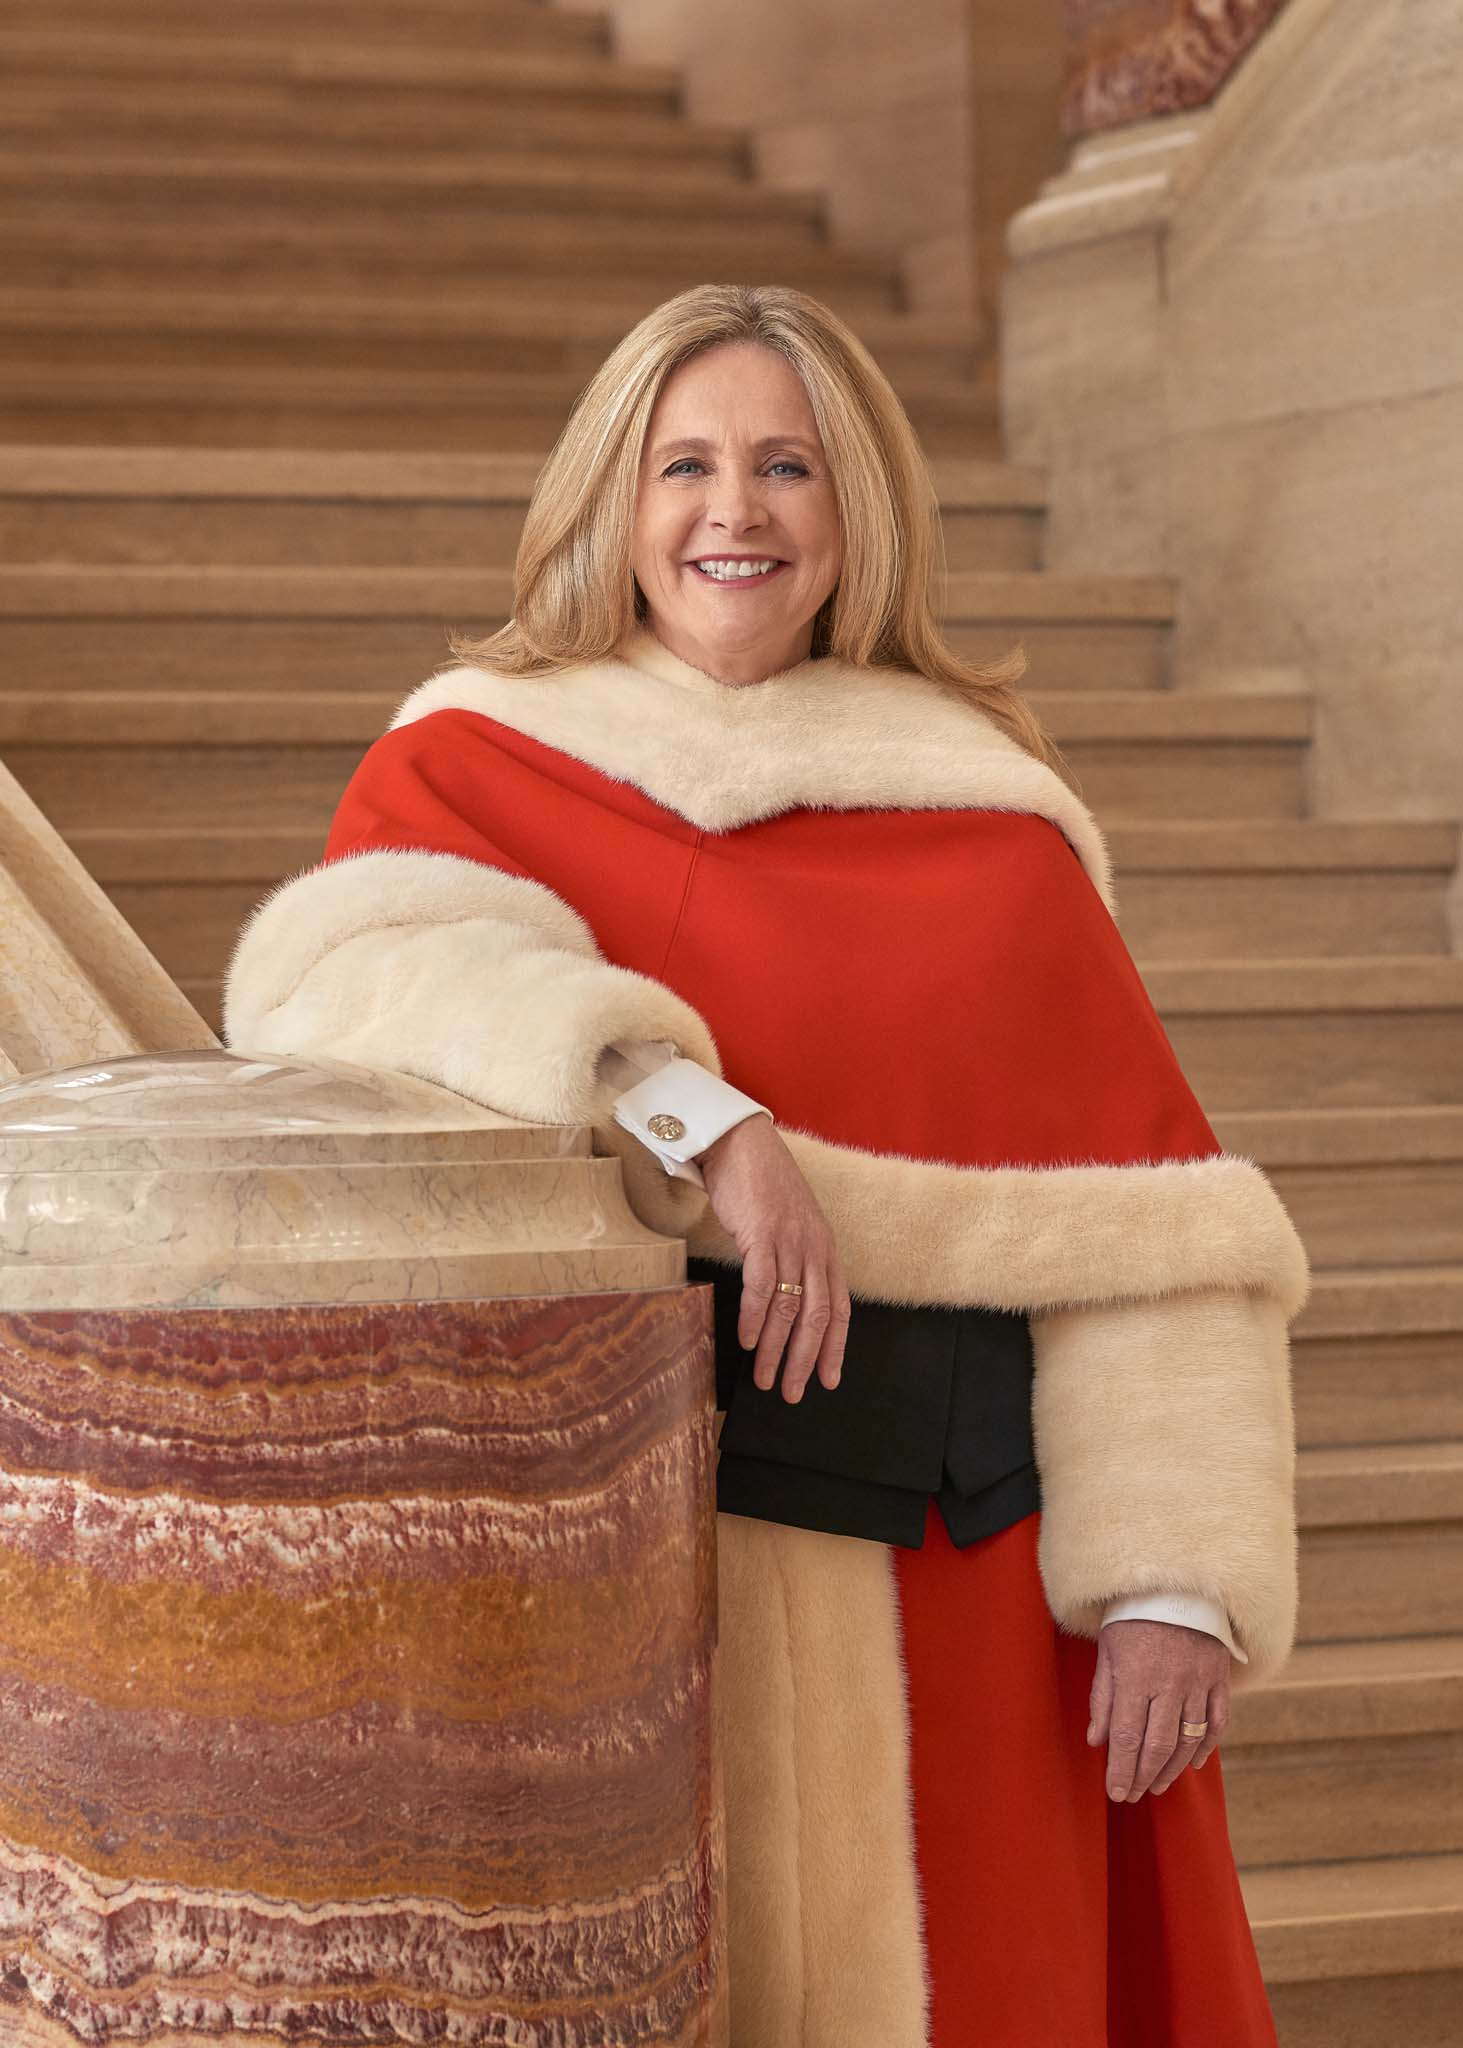 Official portrait of Justice Martin | Supreme Court of Canada